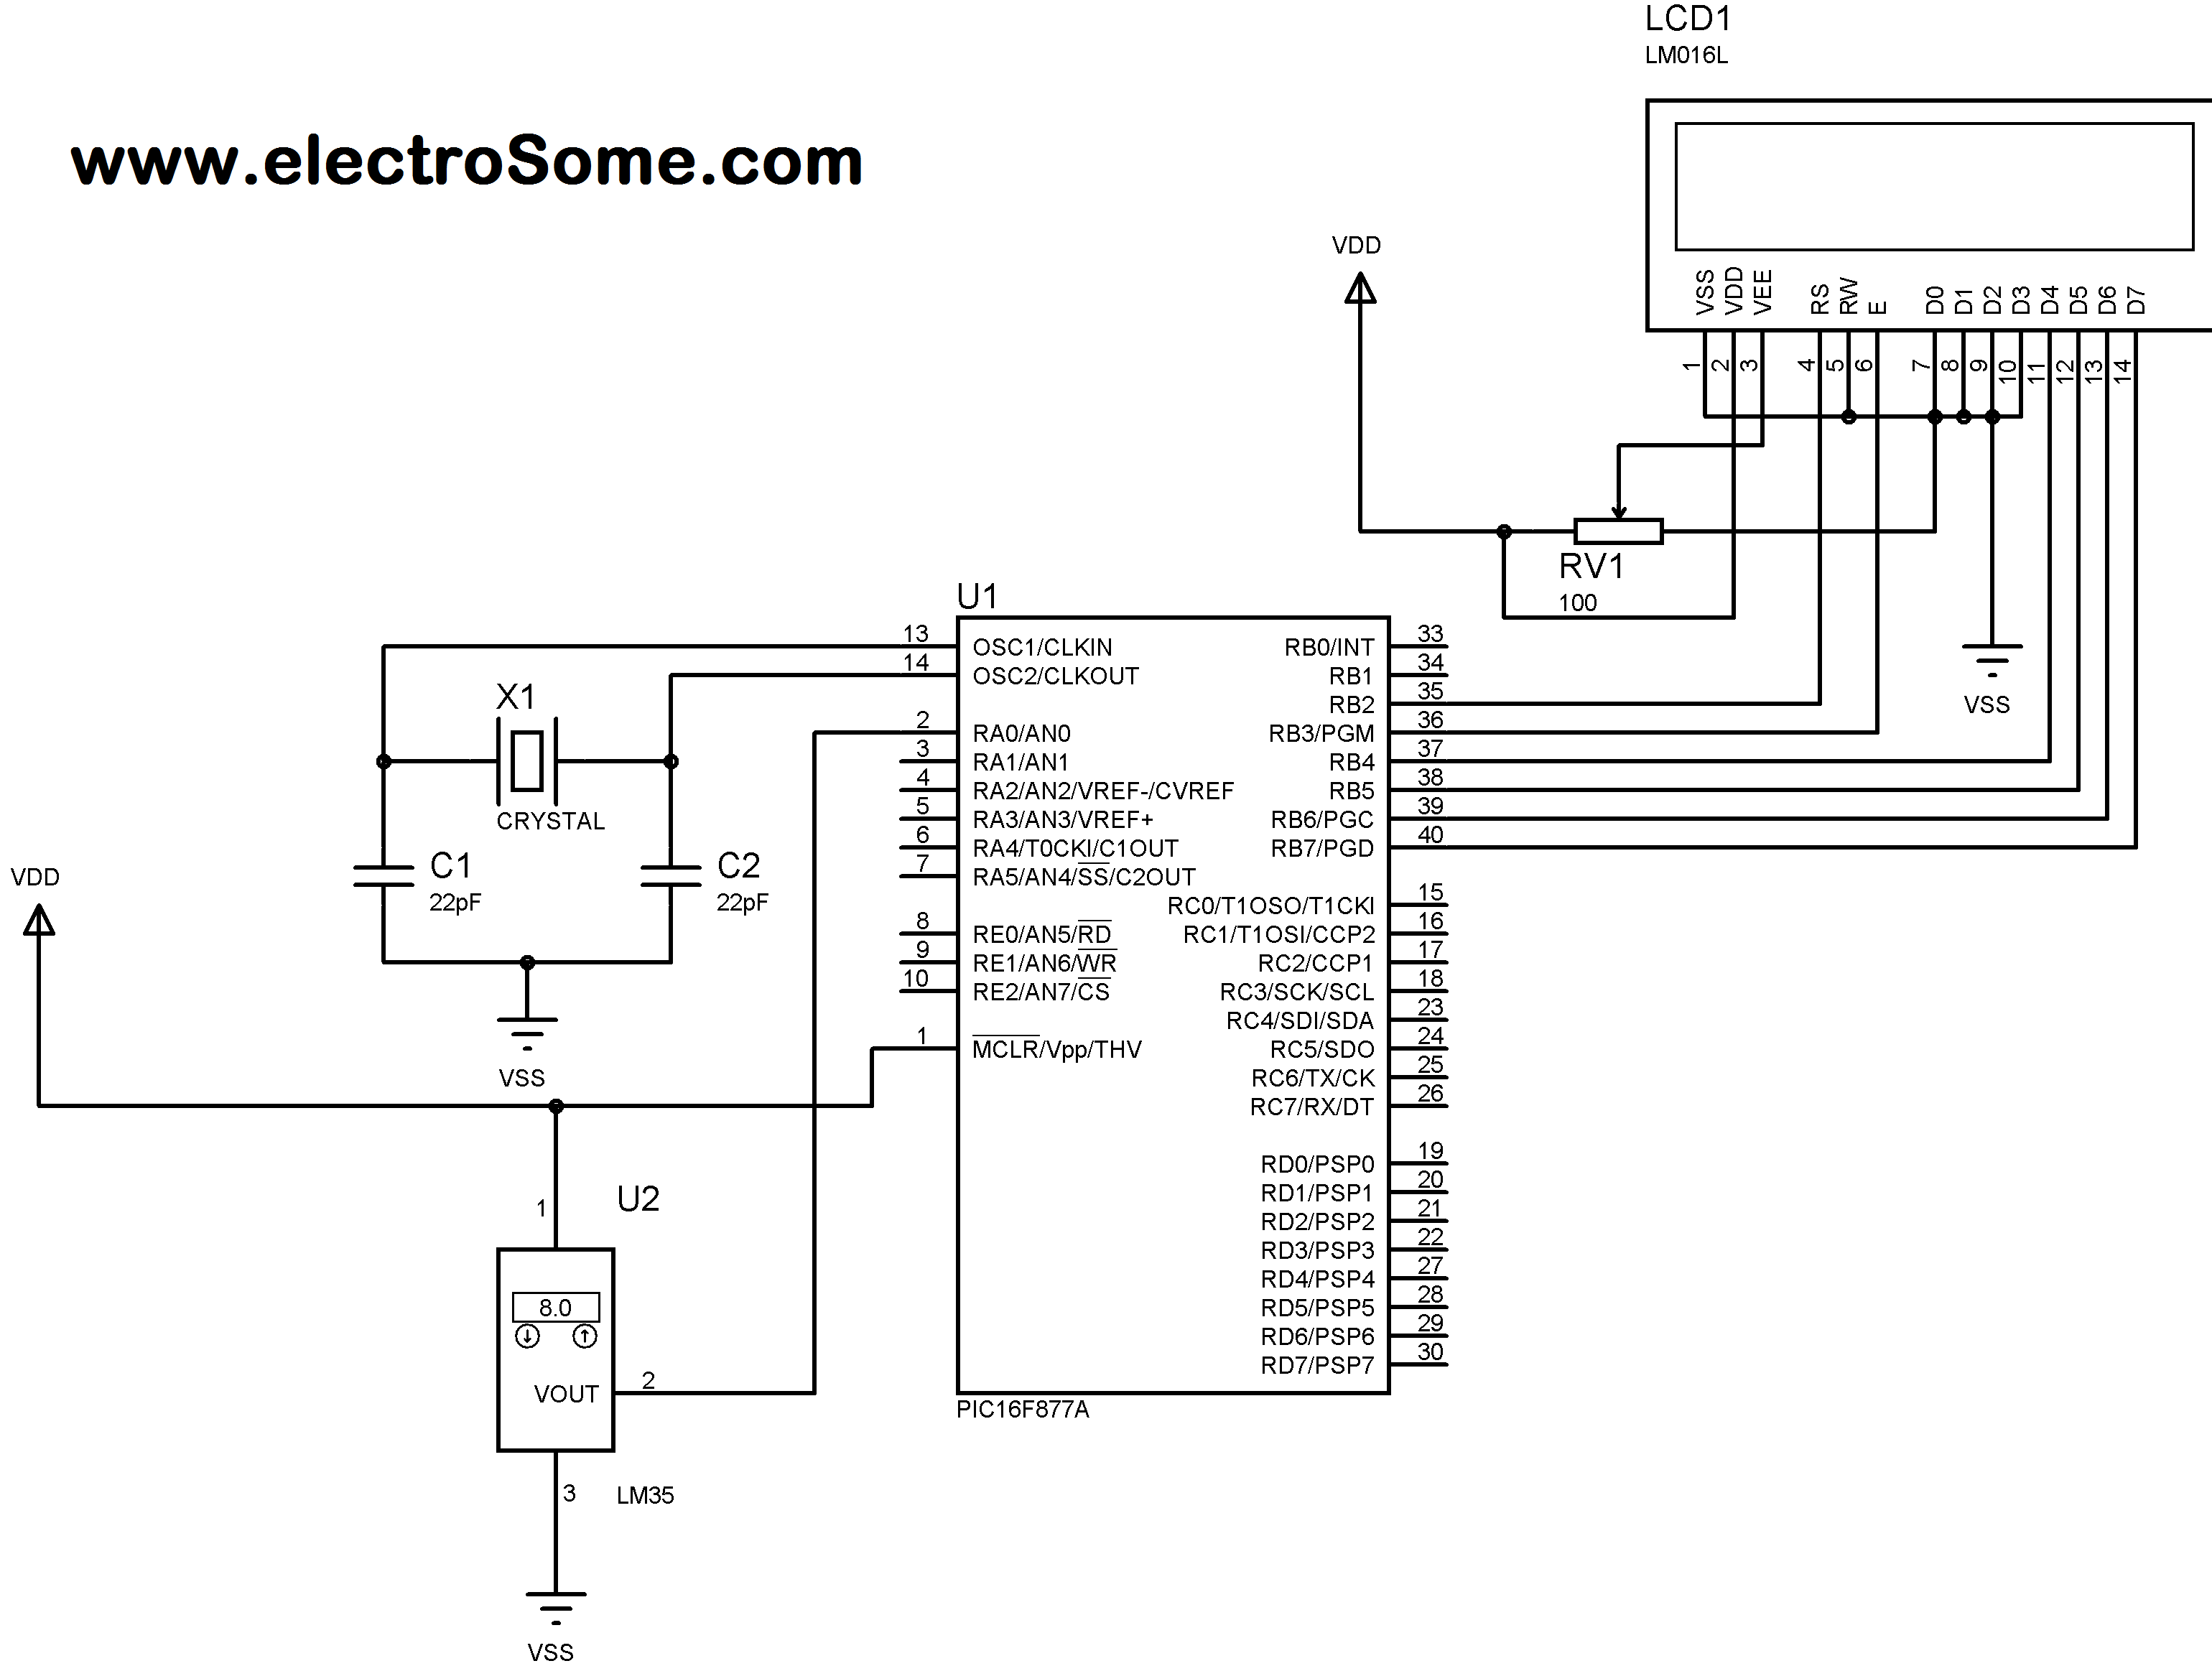 Digital Thermometer Using Pic Microcontroller And Lm35 Degree Electronics Forum Circuits Projects Microcontrollers Circuit Diagram